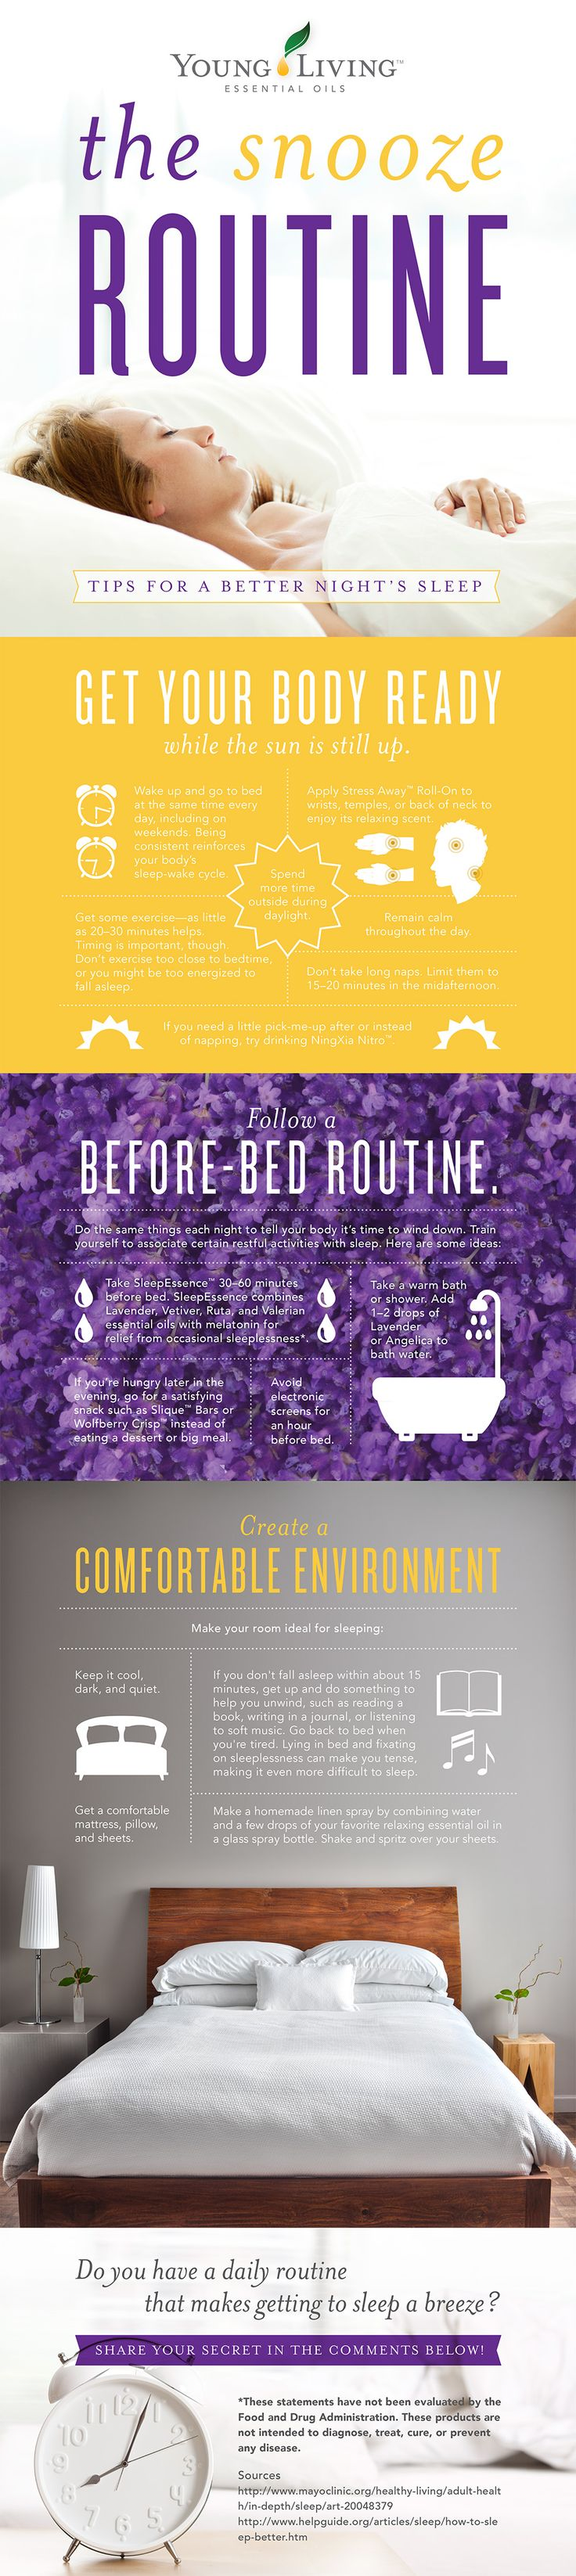 Get a Better Night Sleep - quick tips from Young Living     TheConfidentMom.com